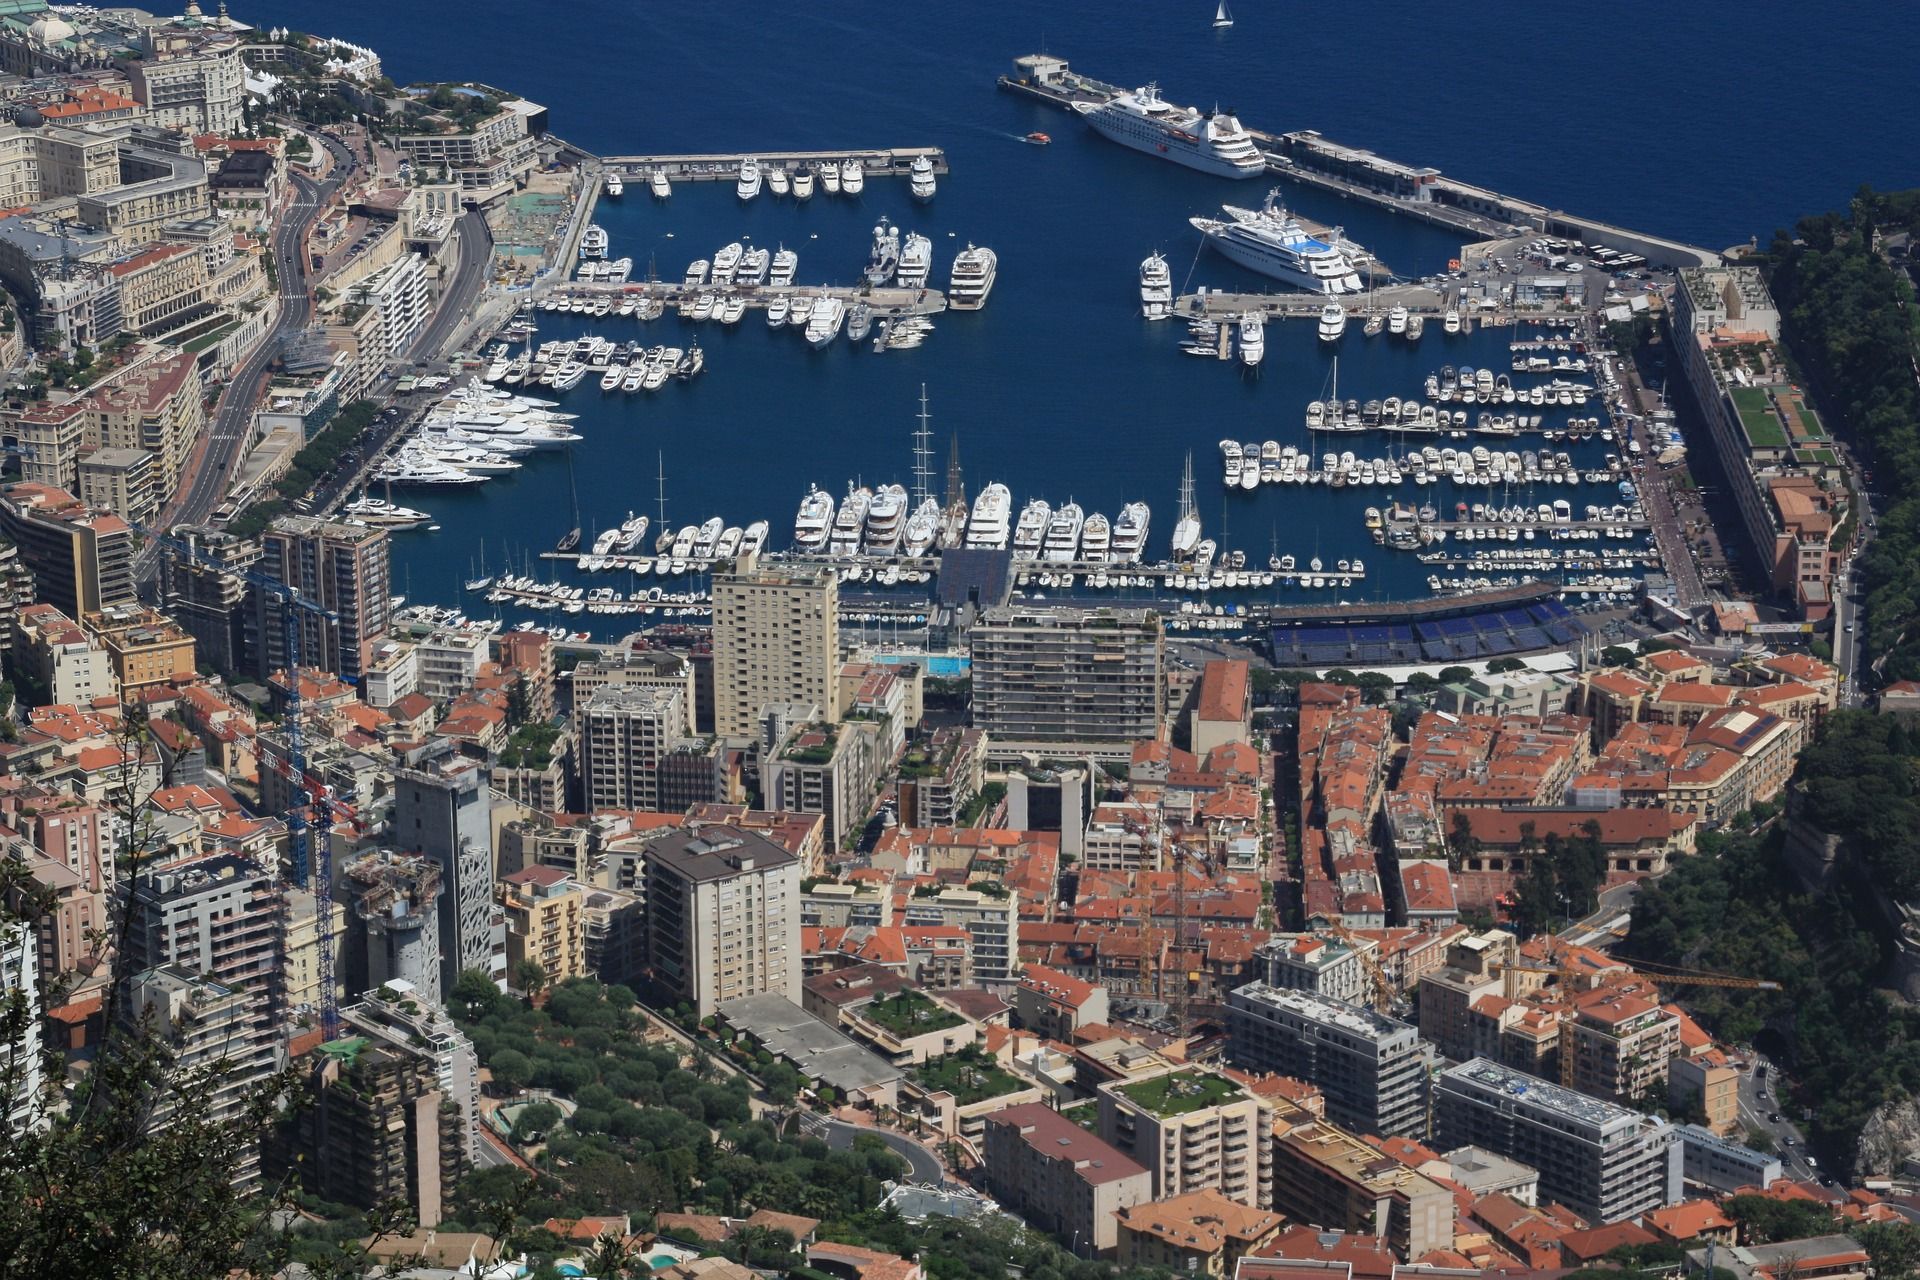 Top 10 Things To See And Do With Kids In Monaco